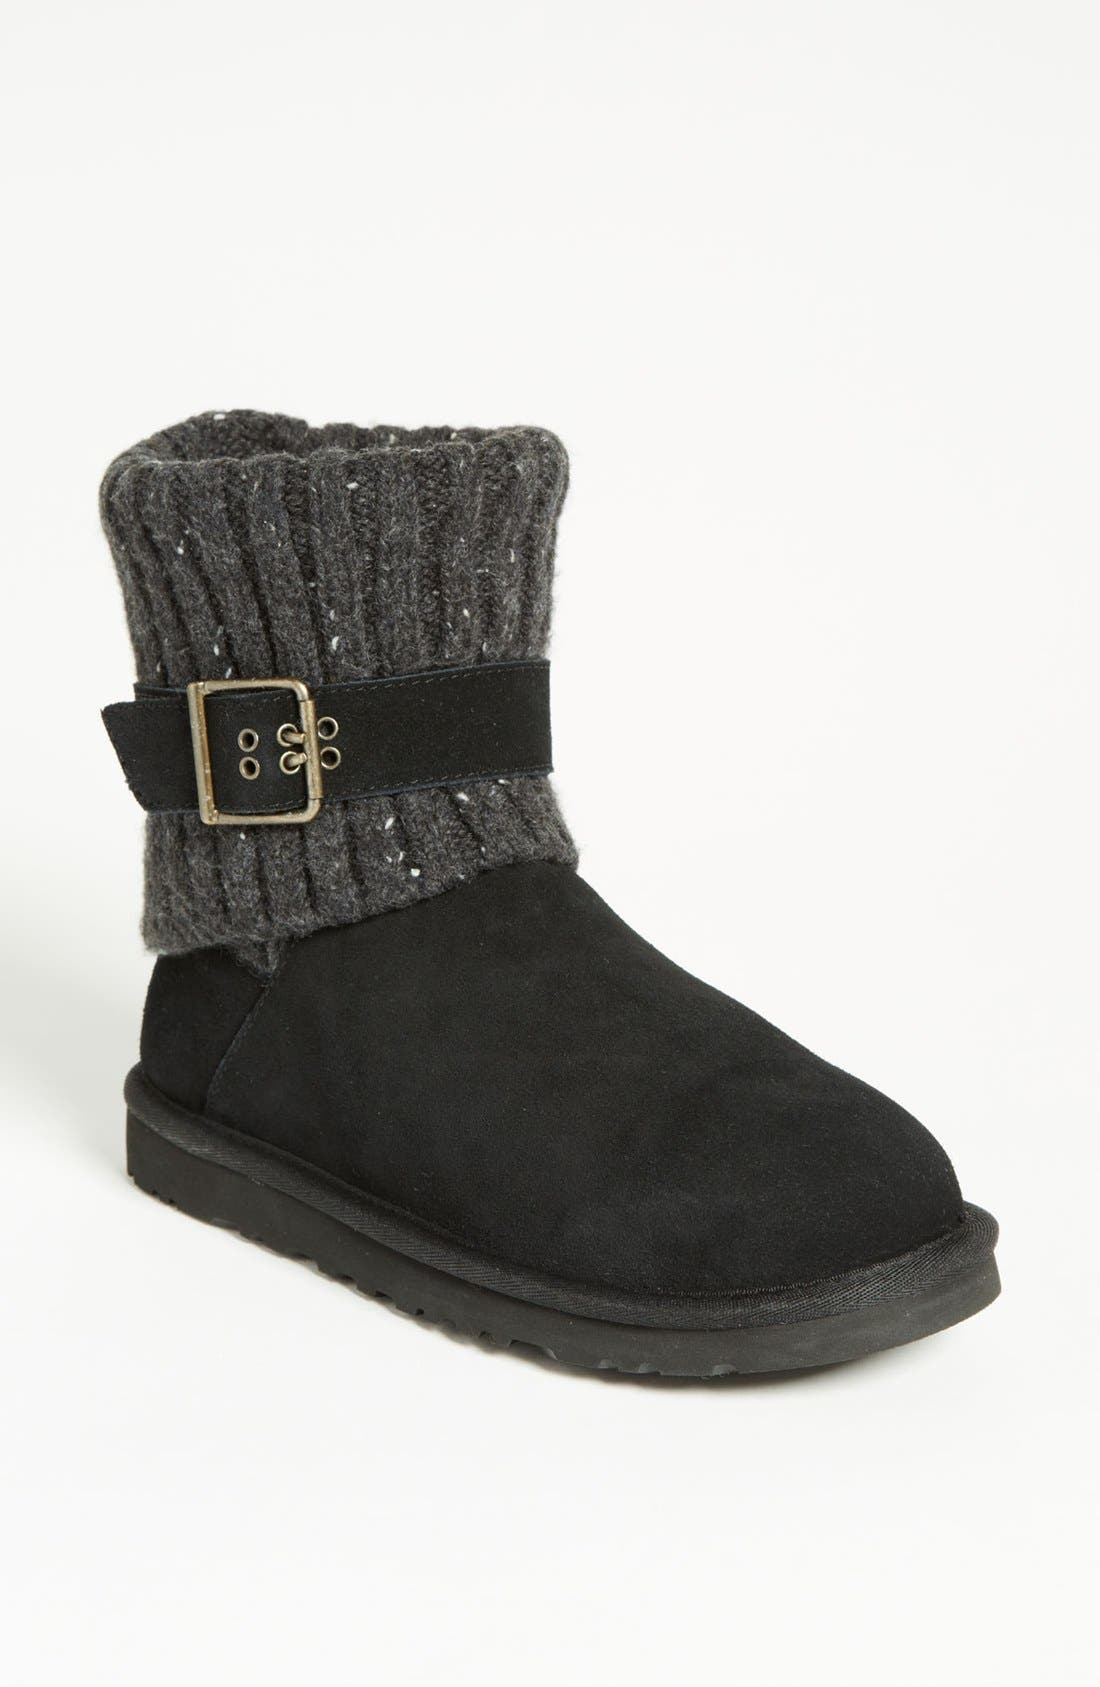 Alternate Image 1 Selected - UGG® 'Cambridge' Boot (Online Only) (Women)